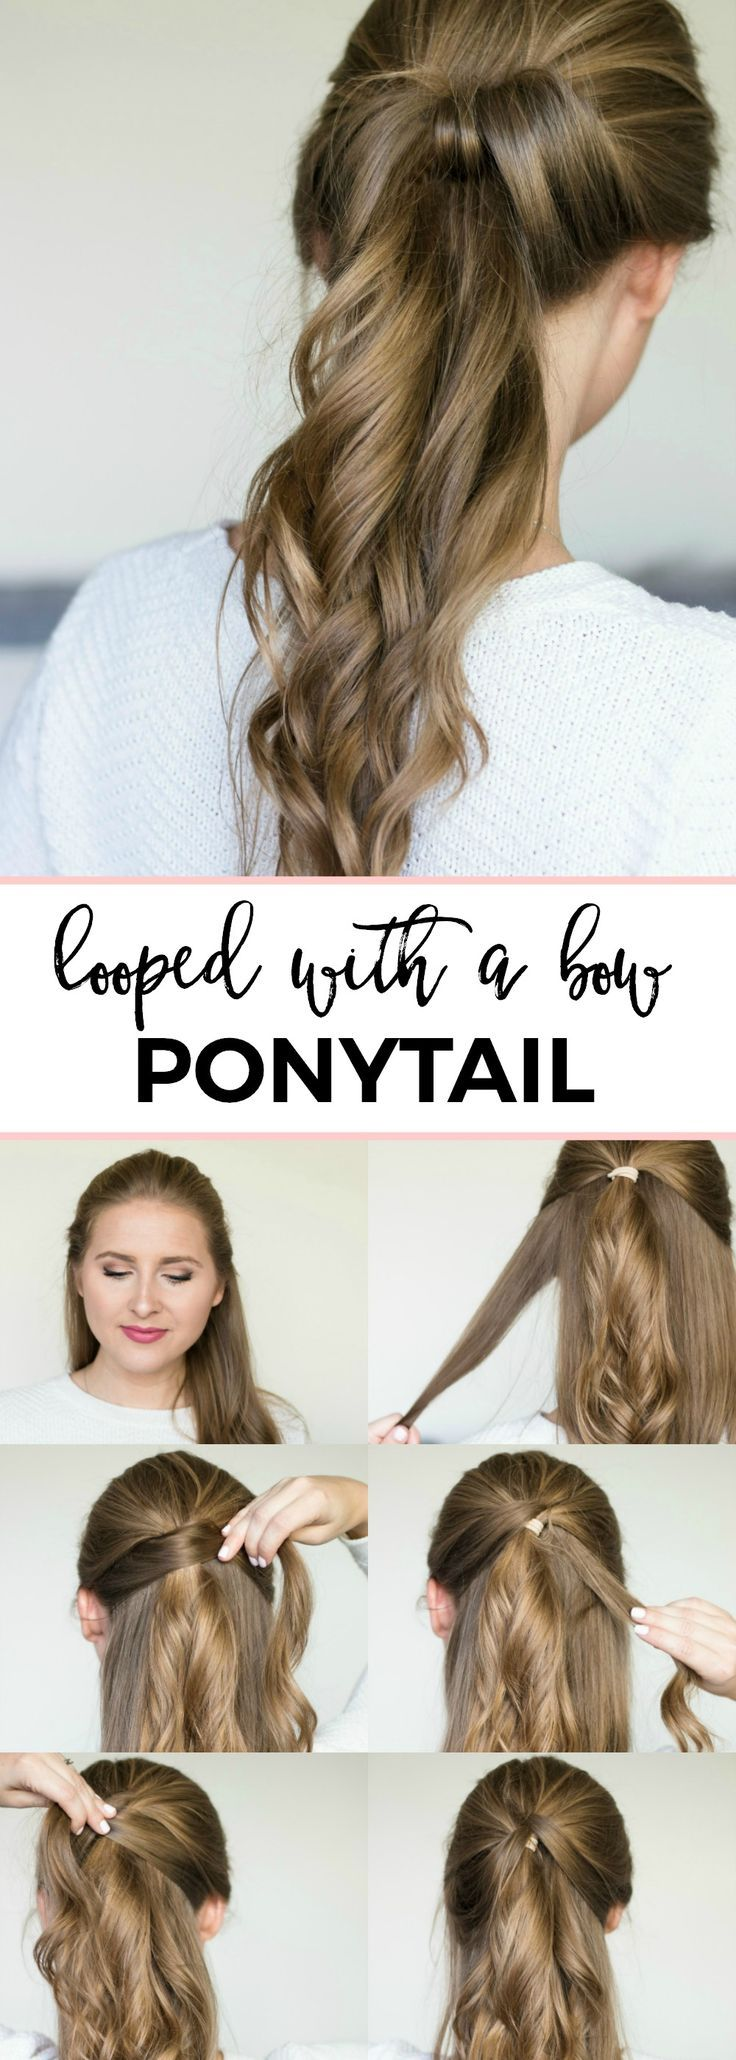 Looped with a bow ponytail - easy 5-minute hair tutorial | Fancy looped ponytail with loose waves hair tutorial | Quick and easy, no-heat hairstyle tutorials with beauty blogger Ashley Brooke Nicholas + the best shampoo and conditioner for dry hair from @Pantene ! #StrongisBeautiful sponsored | cute hairstyles, cute hairstyle ideas, easy hair tutorials, quick hair tutorials, back to school hair ideas, work hair ideas, prom hair ideas